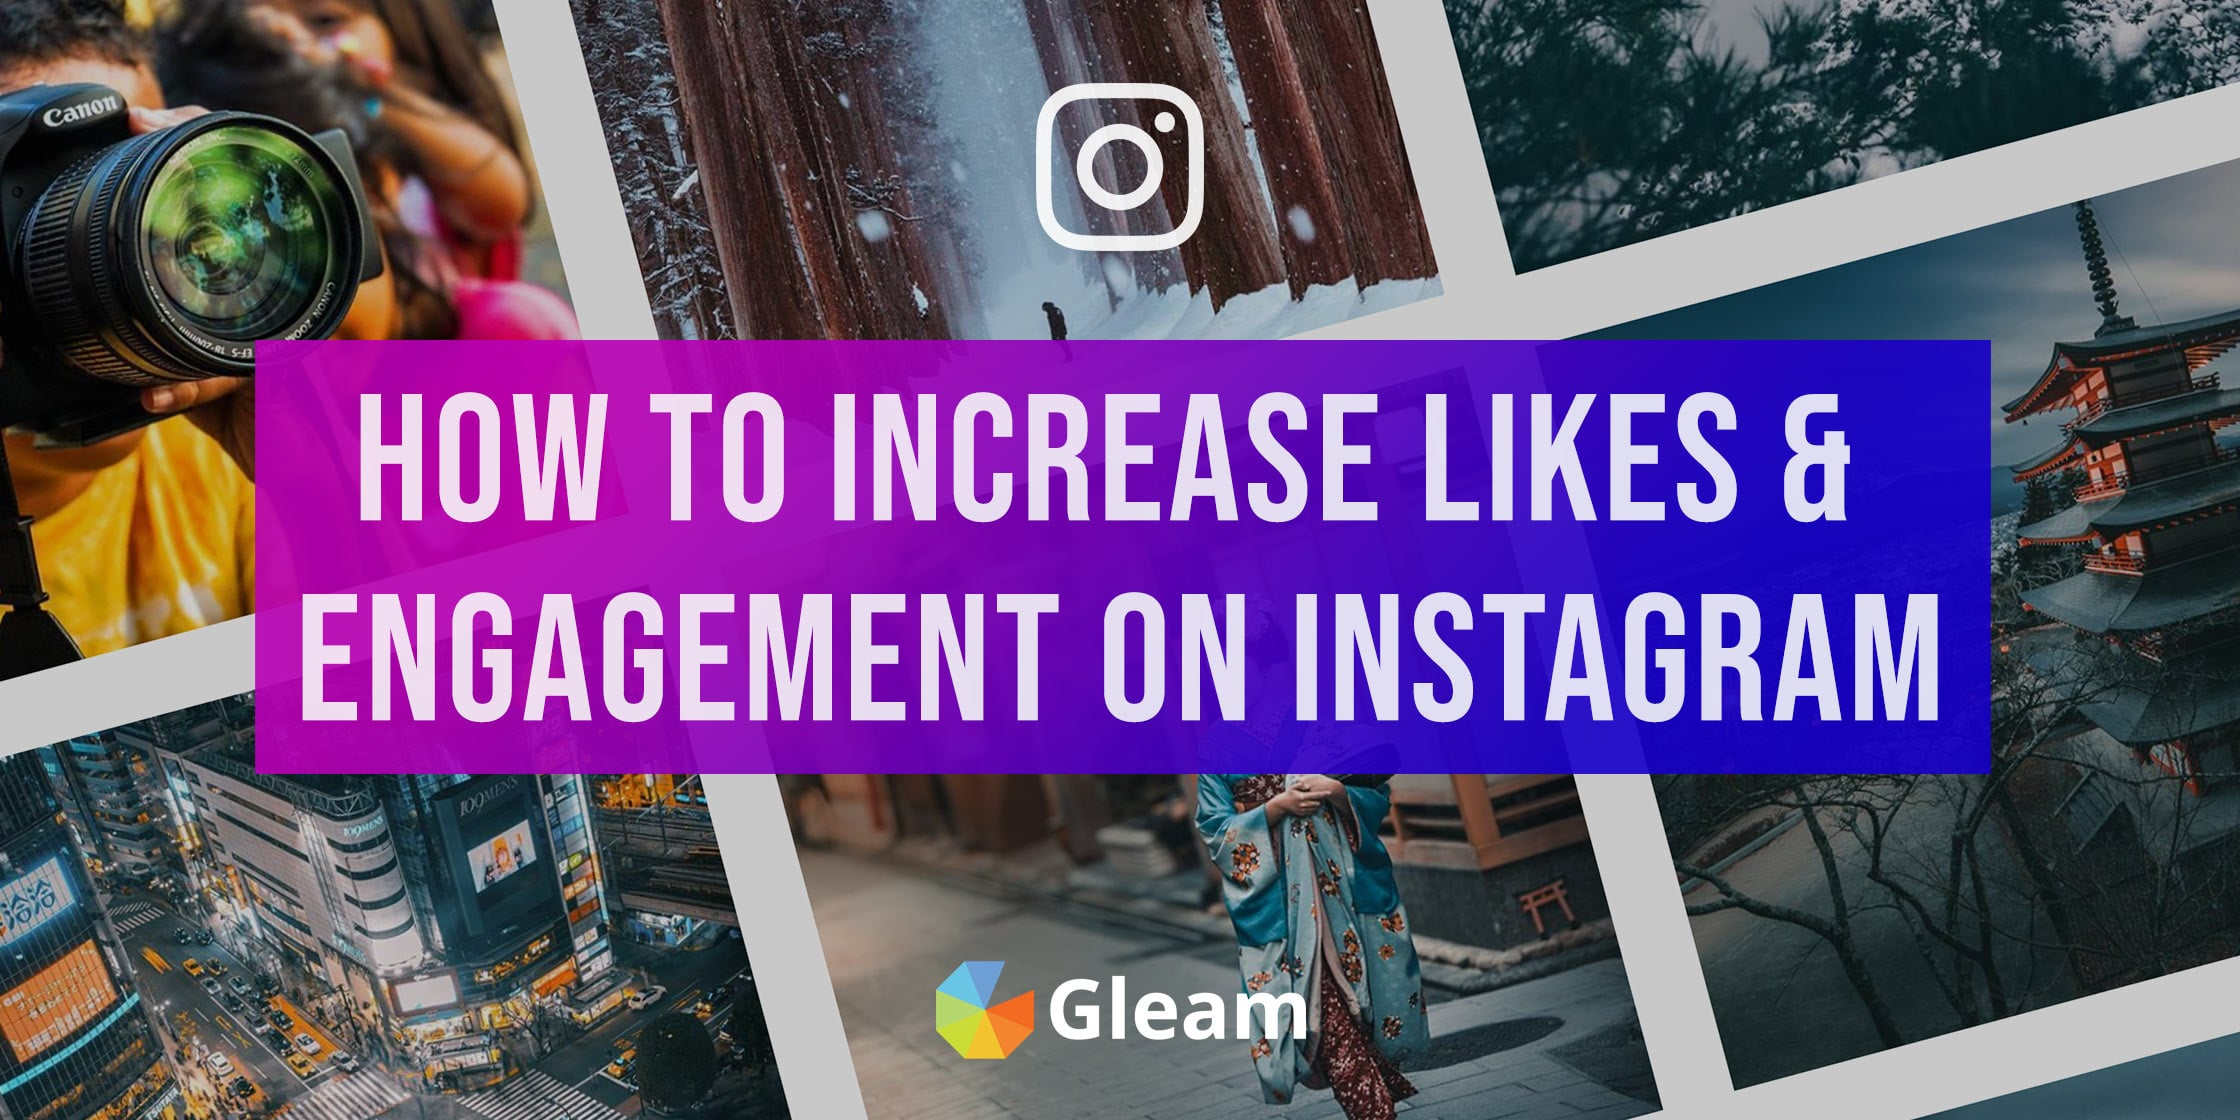 How to Get More Likes on Instagram: 40+ Expert Tips